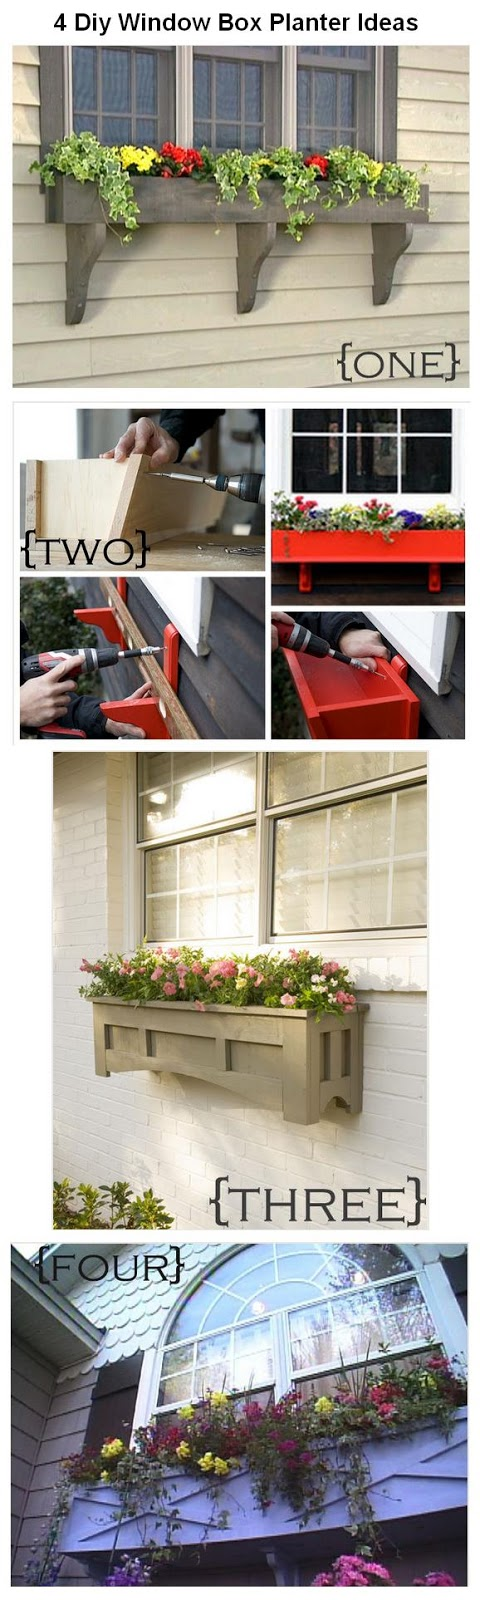 4 diy window box planter ideas. Black Bedroom Furniture Sets. Home Design Ideas